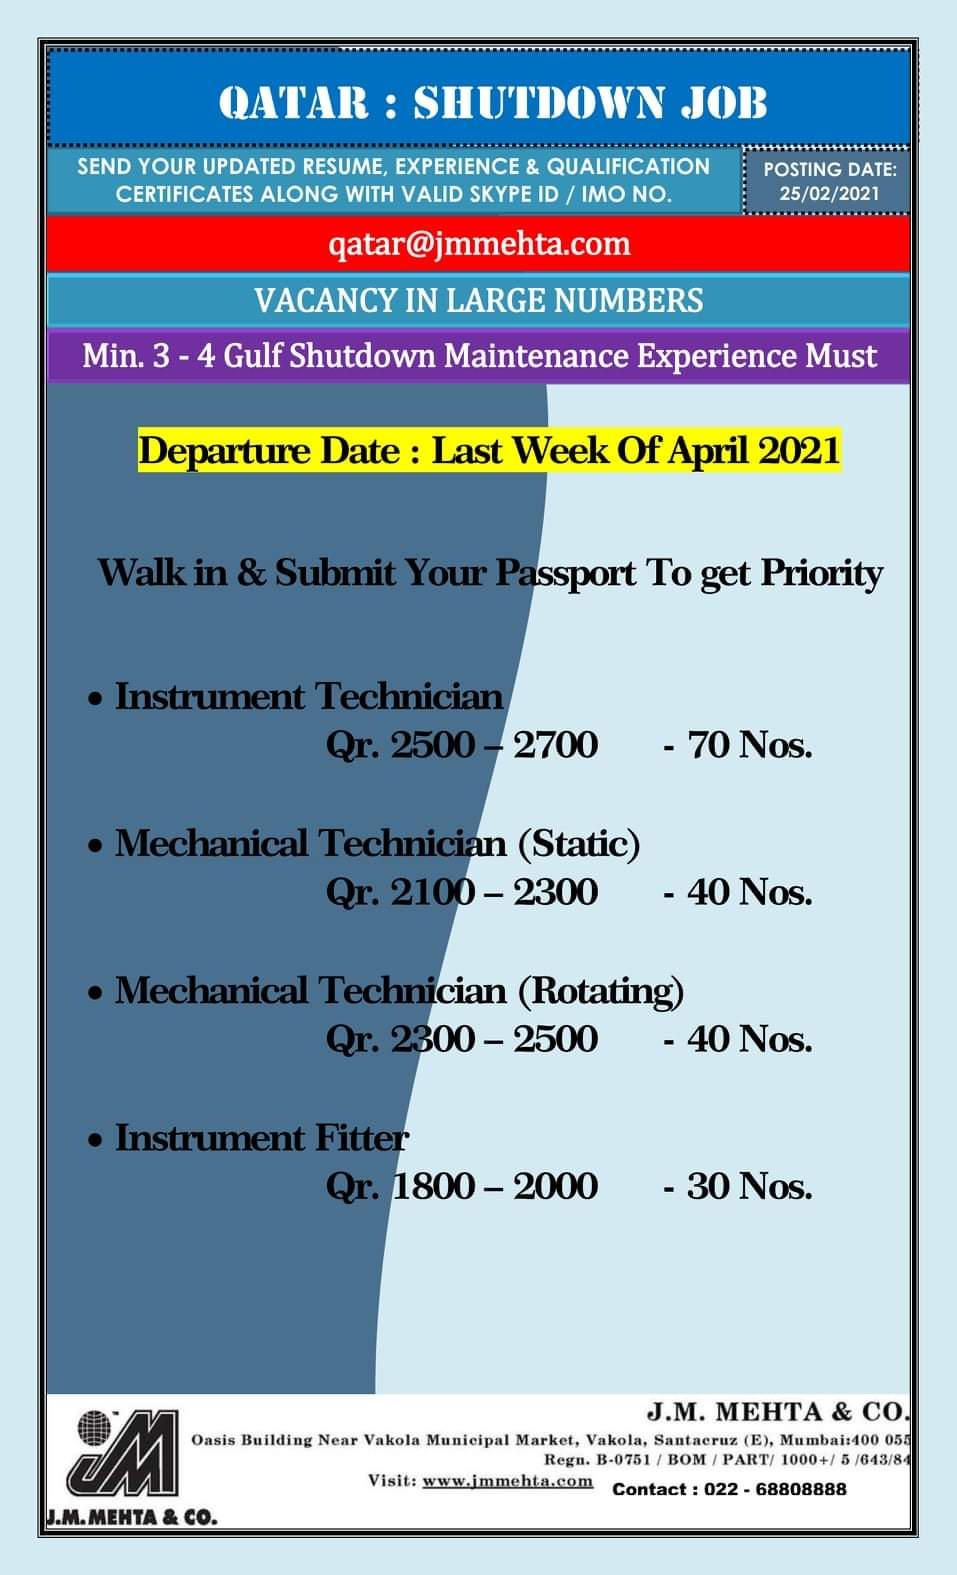 REQUIRED FOR A LEADING SHUTDOWN JOB-QATAR